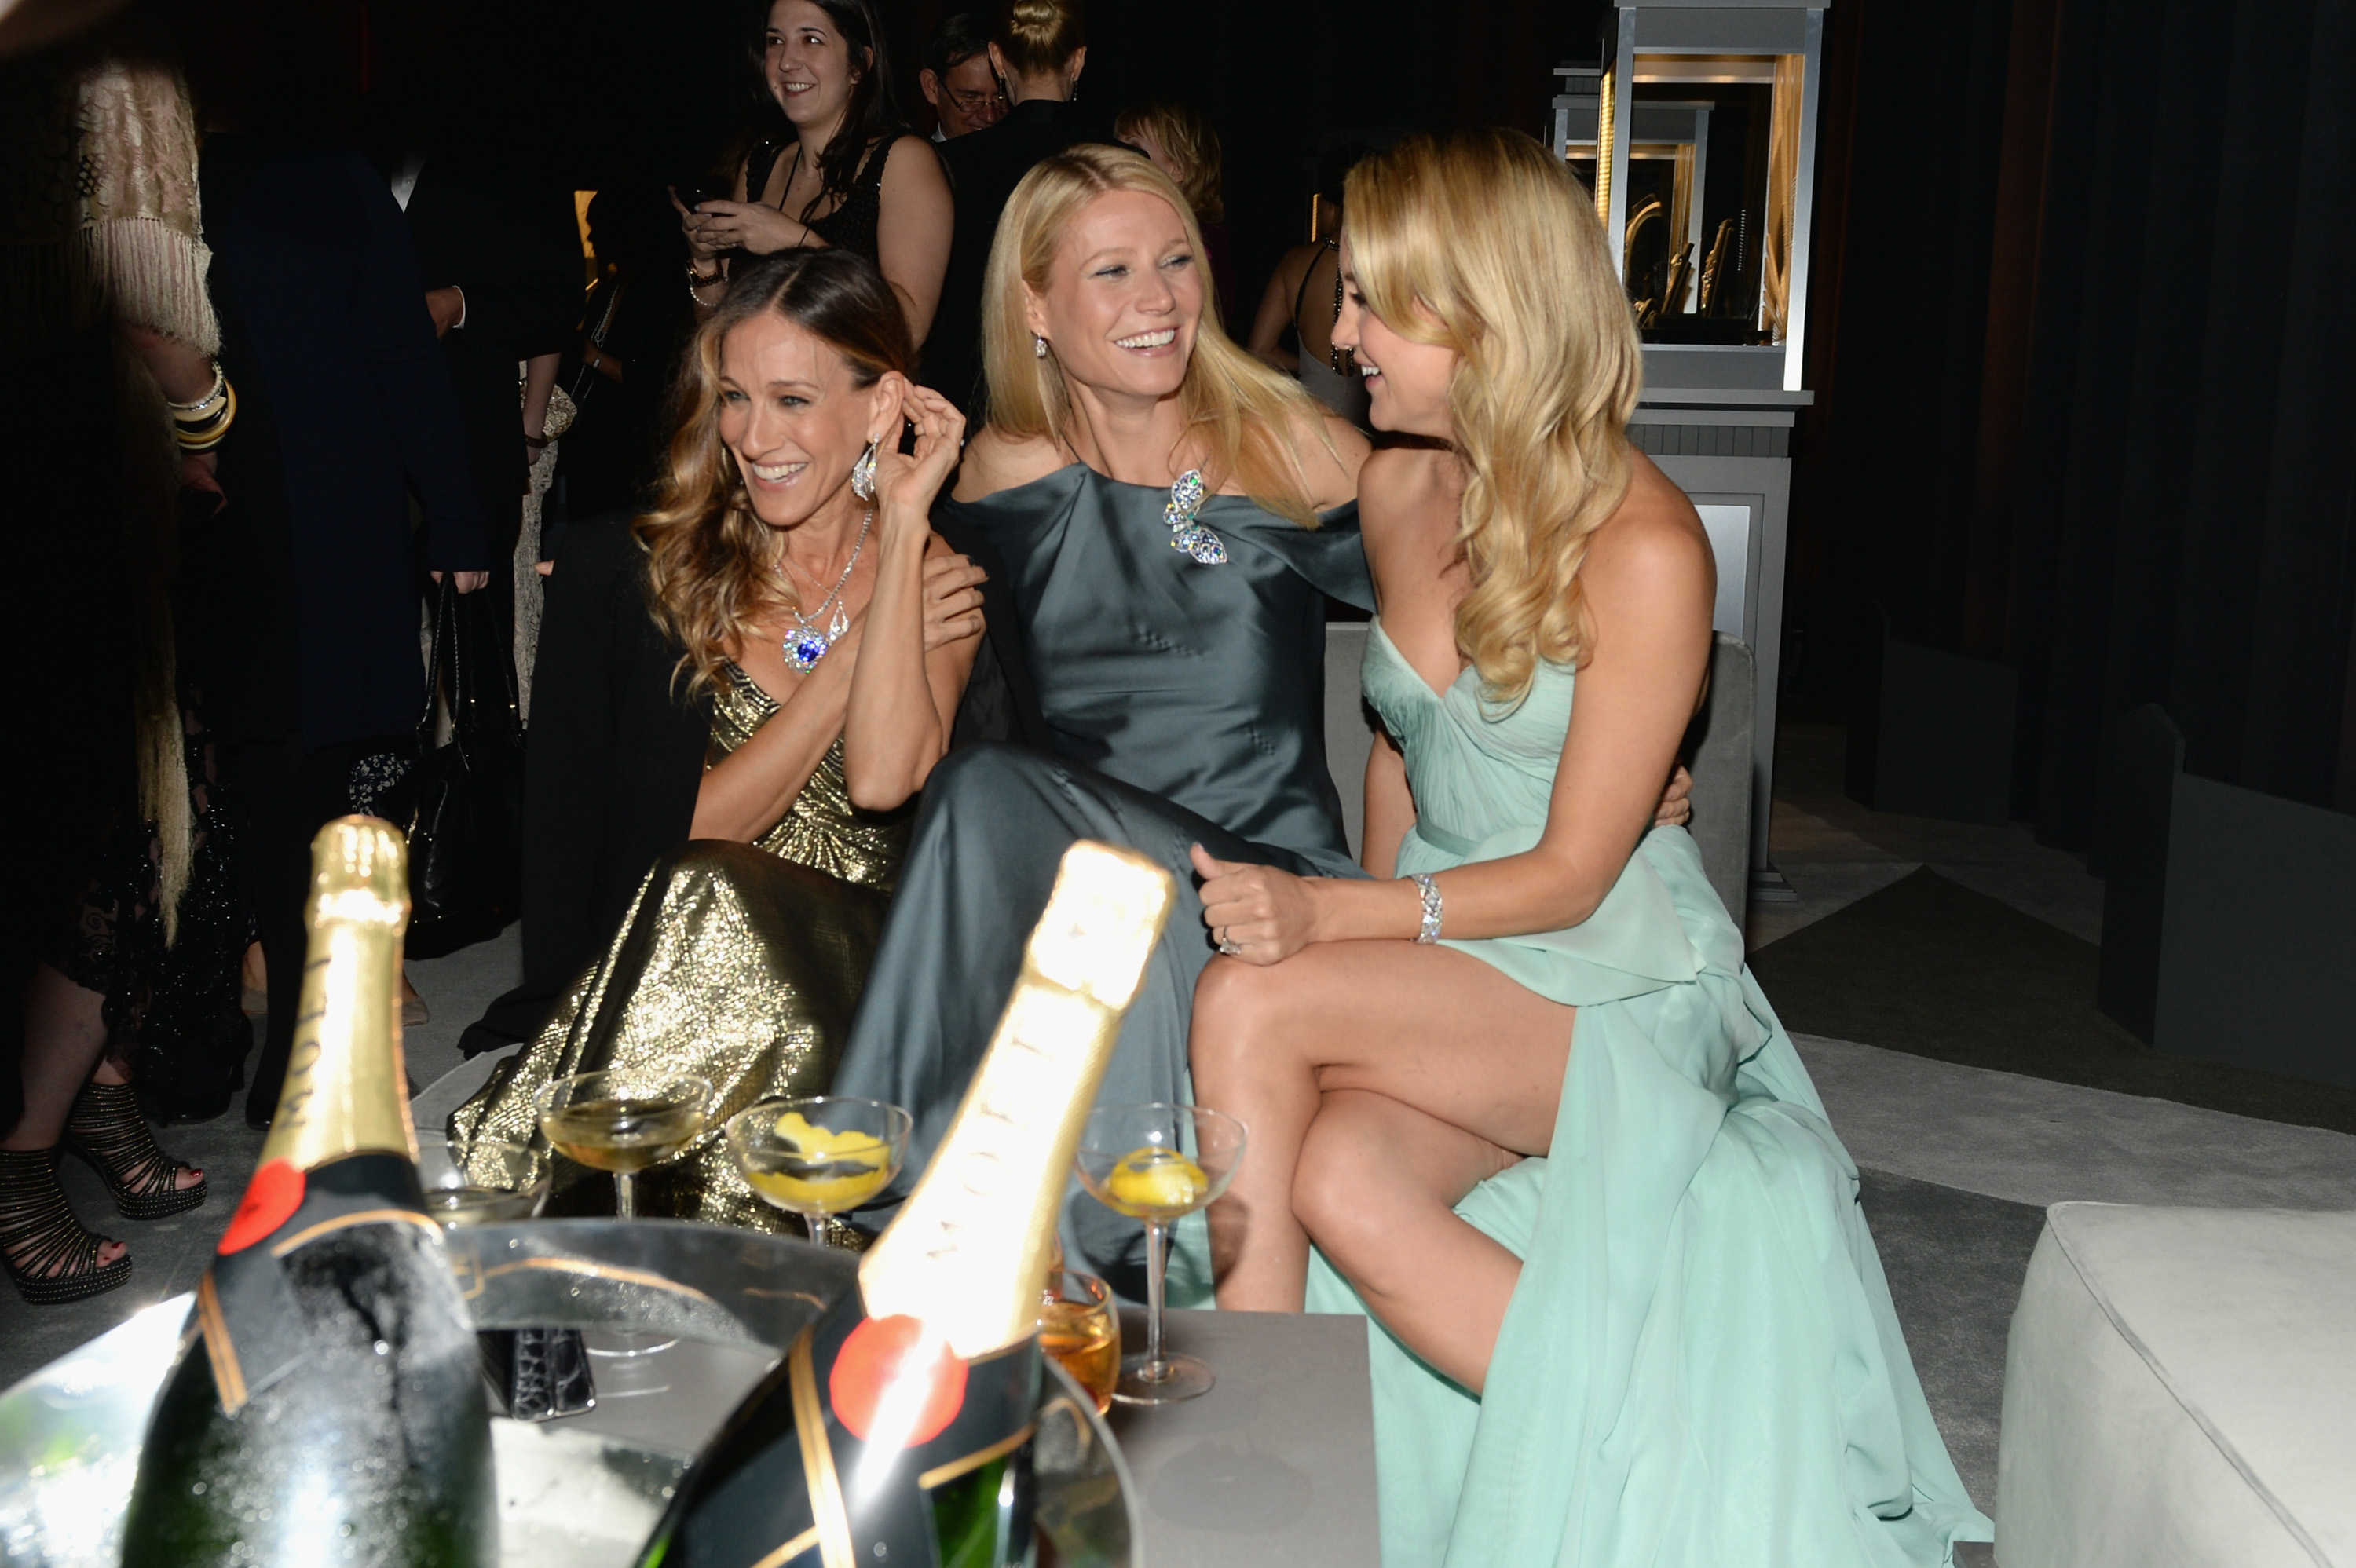 Gwyneth Paltrow, Sarah Jessica Parker and Kate Hudson at the Tiffany & Co. Blue Book Ball at Rockefeller Center in NYC April 18, where Moet & Chandon Imperial Champagne (featured in The Great Gatsby) flowed freely.